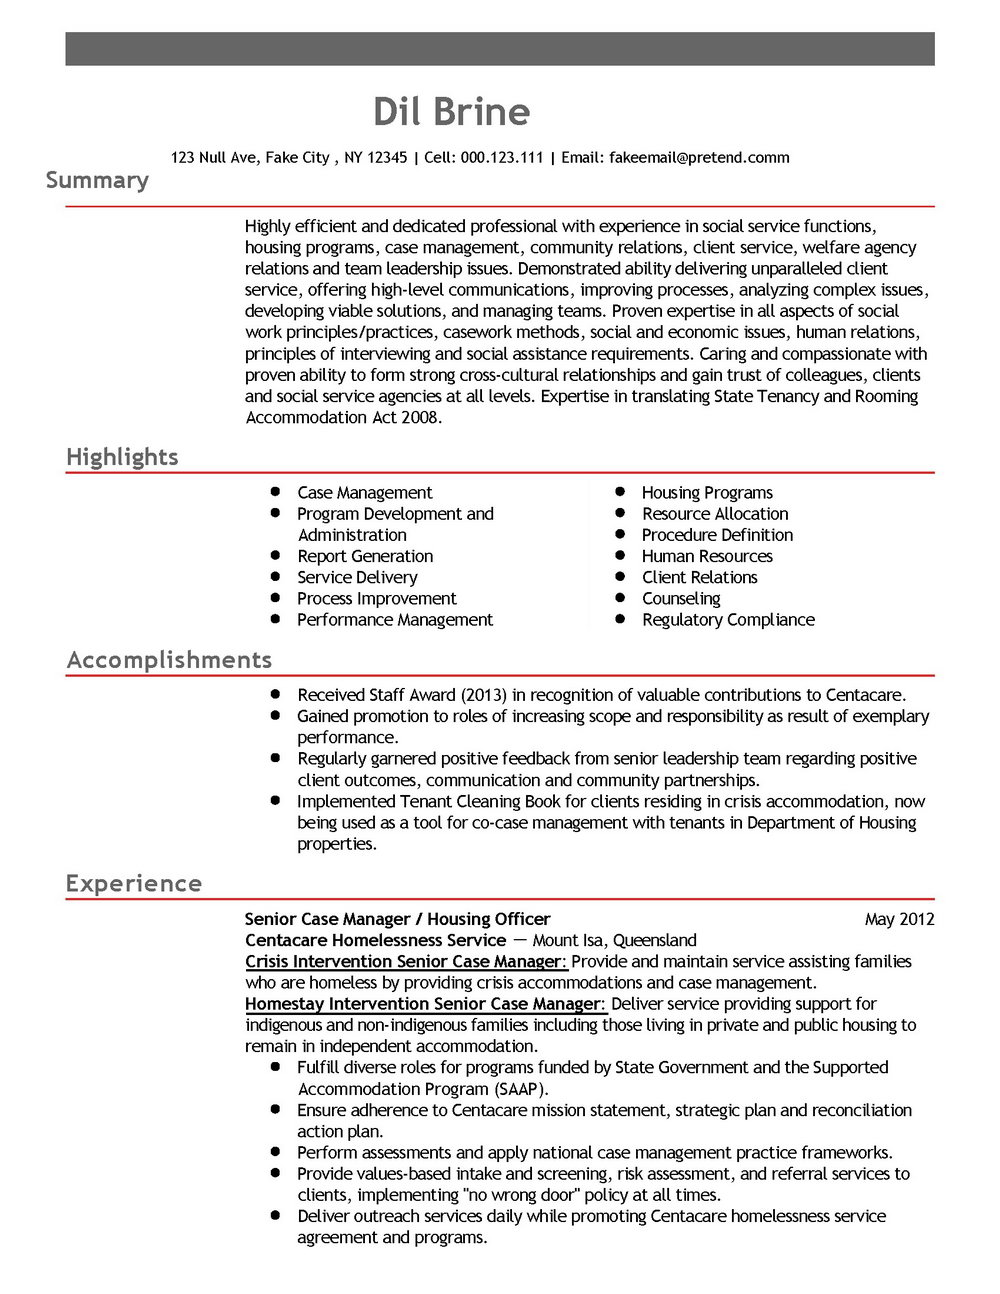 Resume Samples For Development Professionals